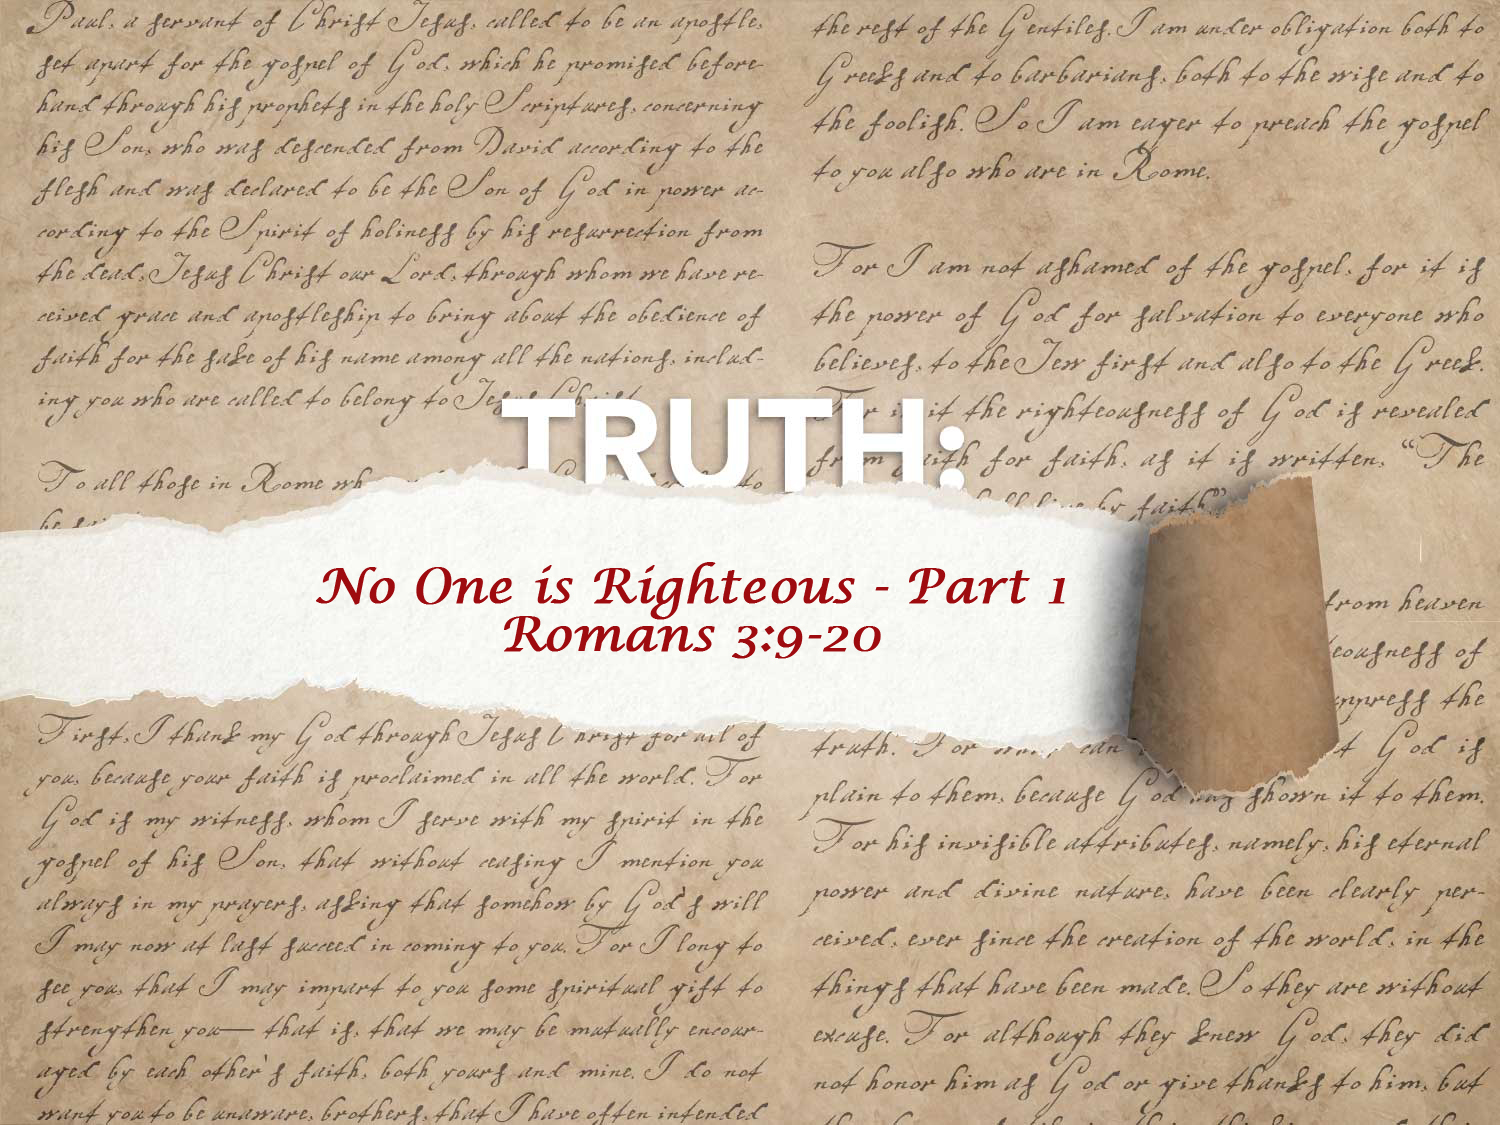 Romans 3:9-20 No One is Righteous Part 1